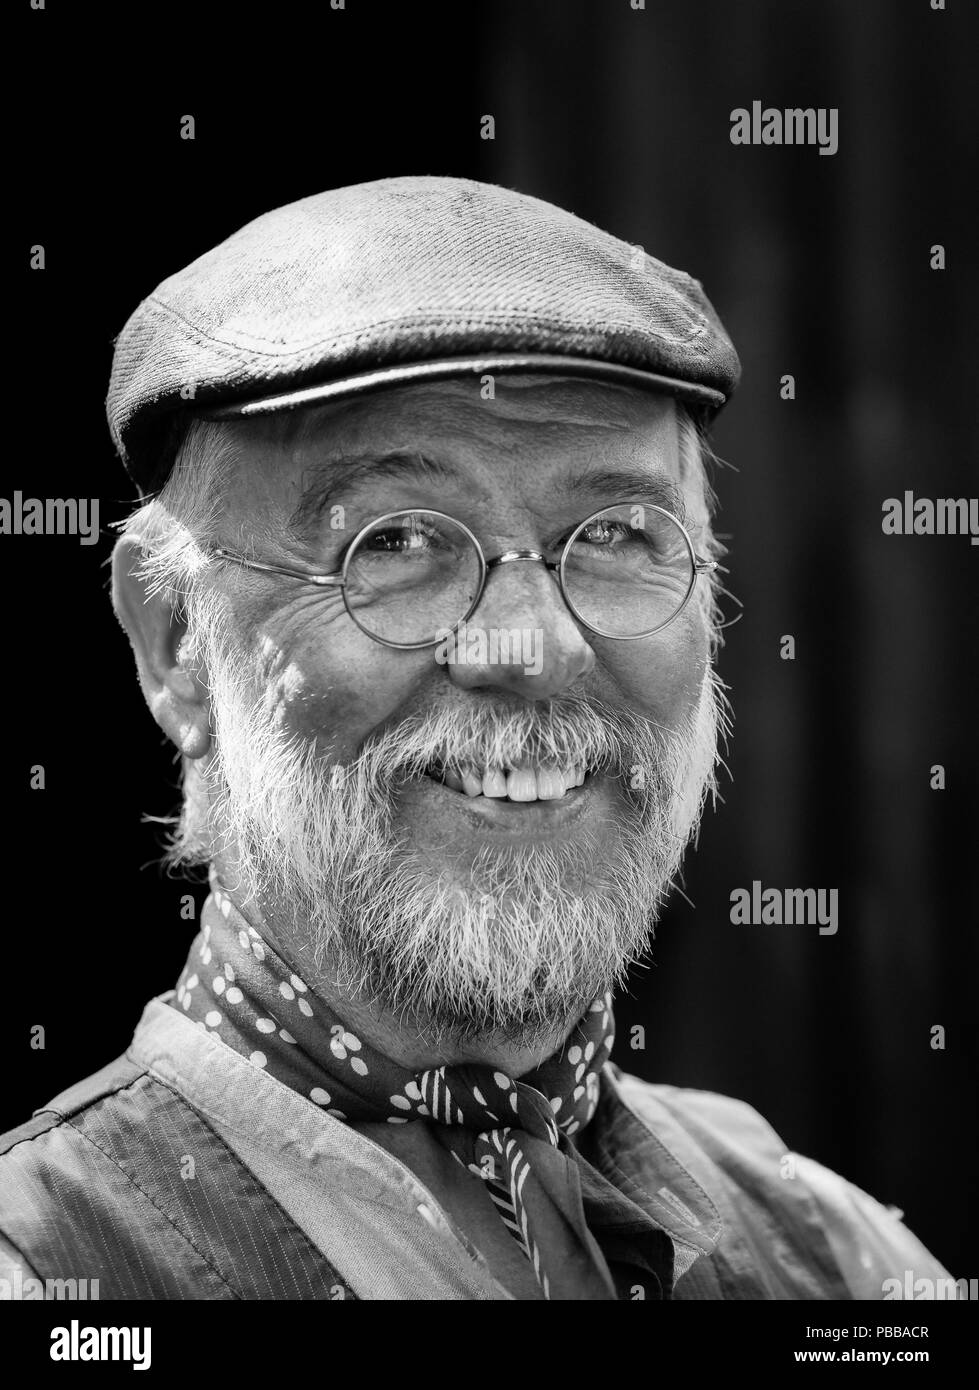 Close-up, black and white portrait of smiling colliery worker at the Black Country Living Museum, Dudley during the 1940s weekend event, July 2018. - Stock Image